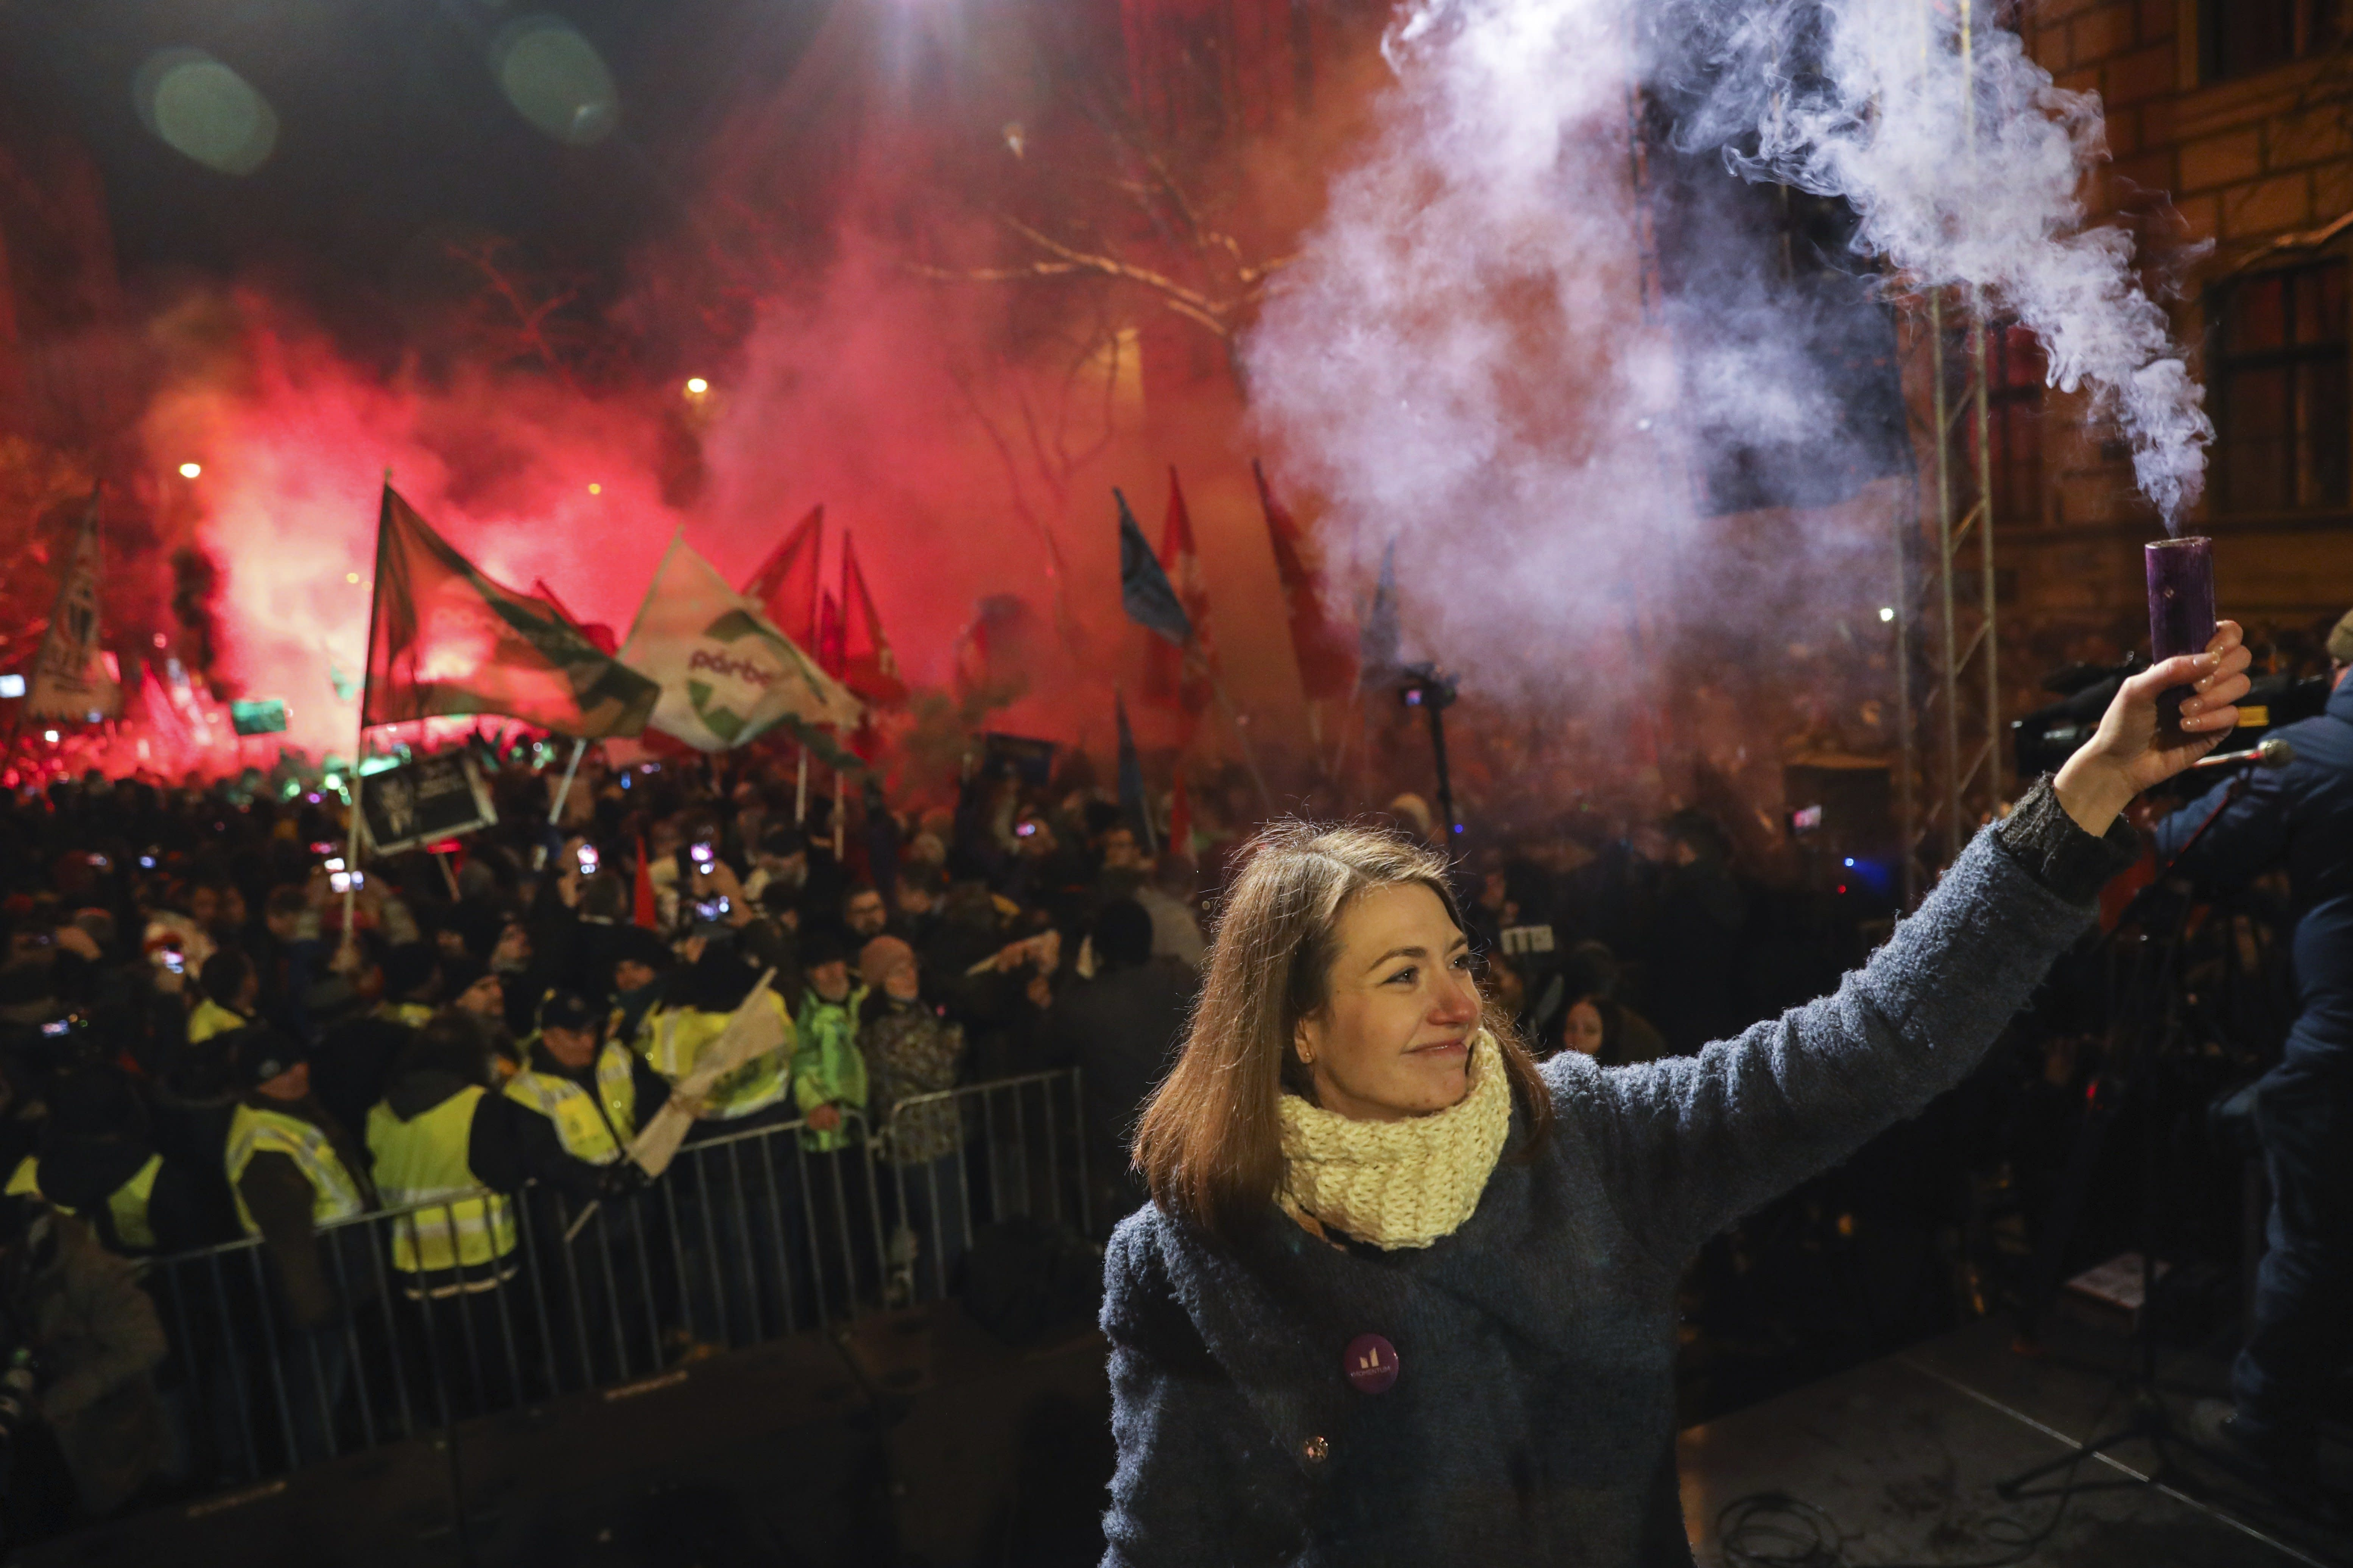 Vice-chairperson of Momentum party Anna Donath holds up a smoke grenade during an anti-government protest in the downtown of Budapest, Hungary, Sunday, Dec. 16, 2018. (Balazs Mohai/MTI via AP)